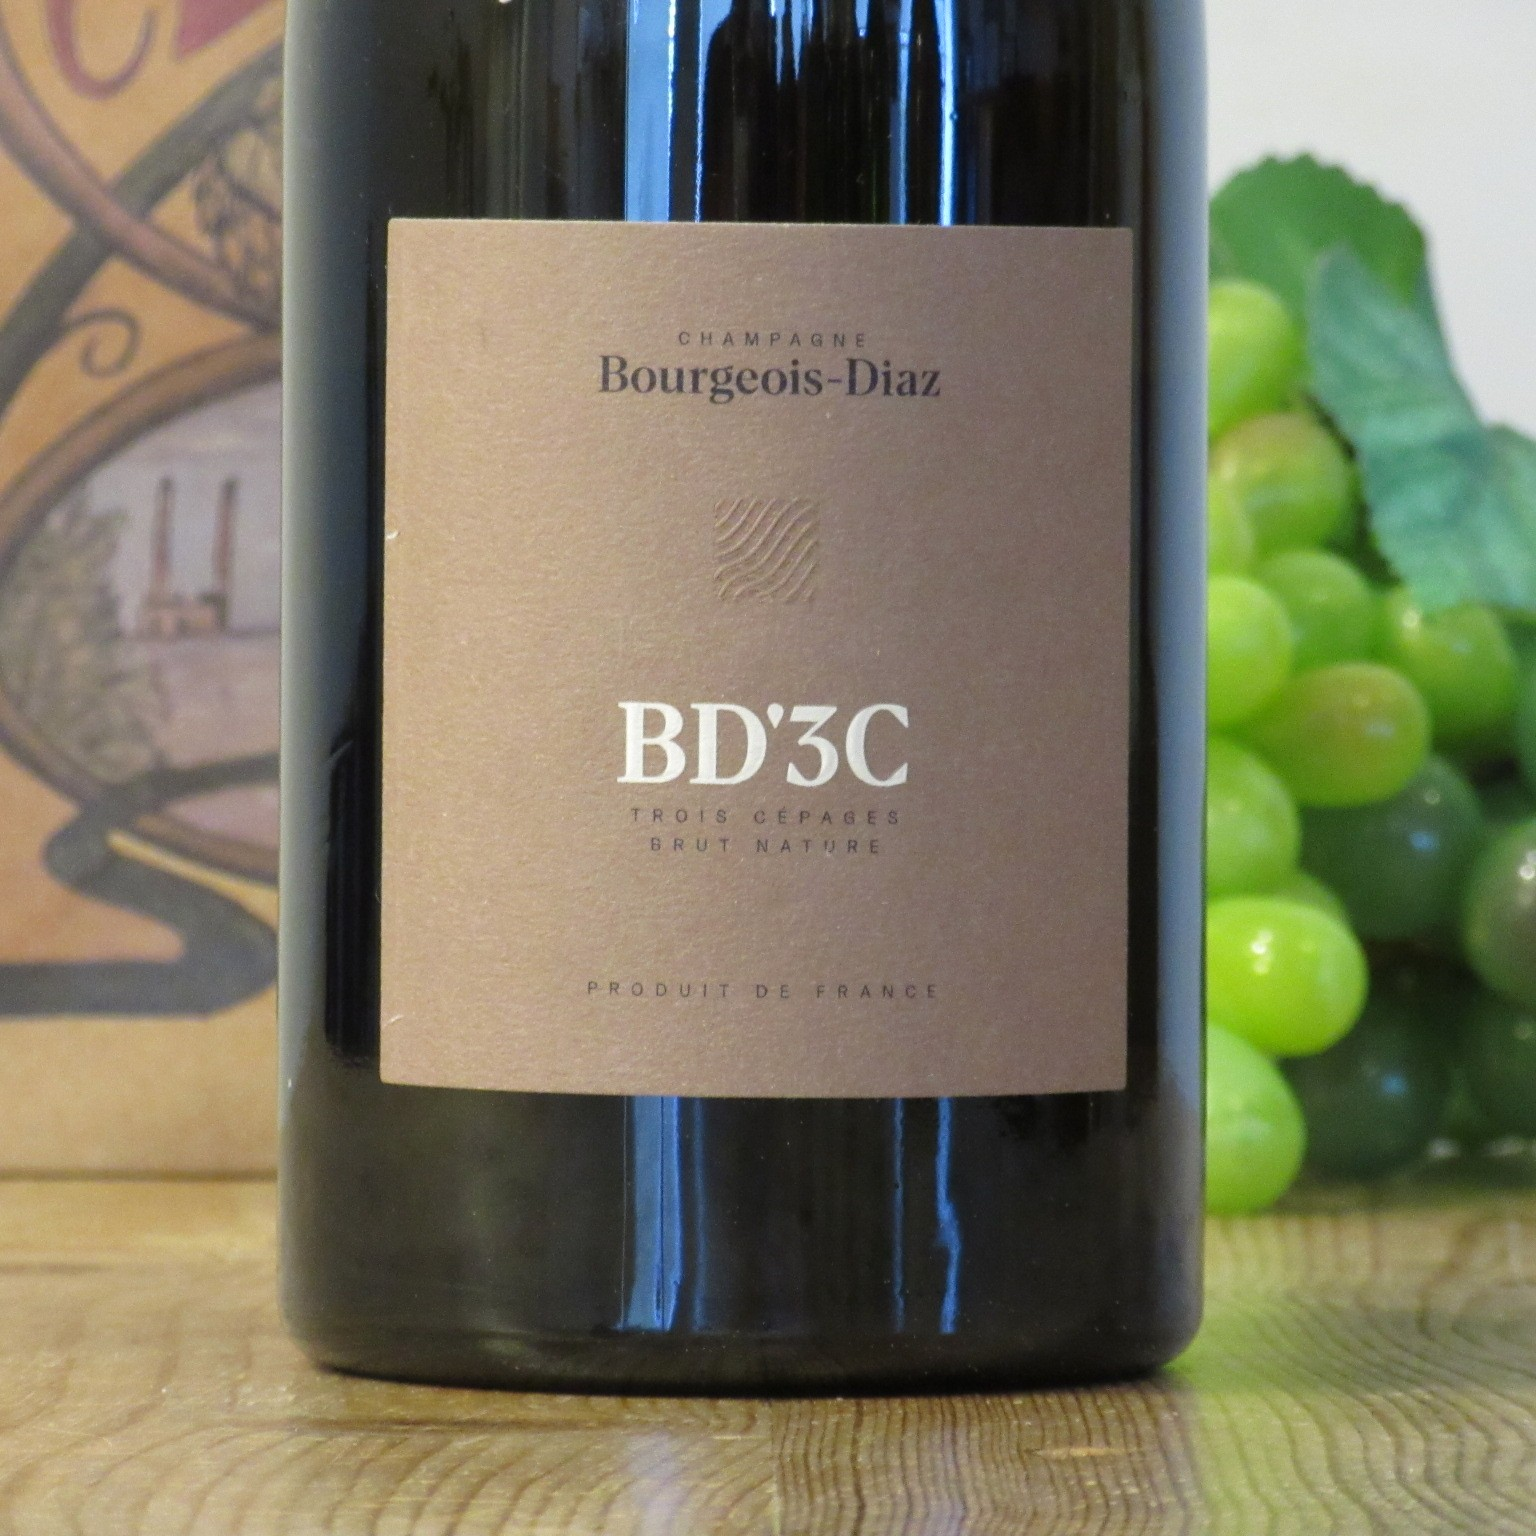 Bourgeois-Diaz '3C Champagne NV